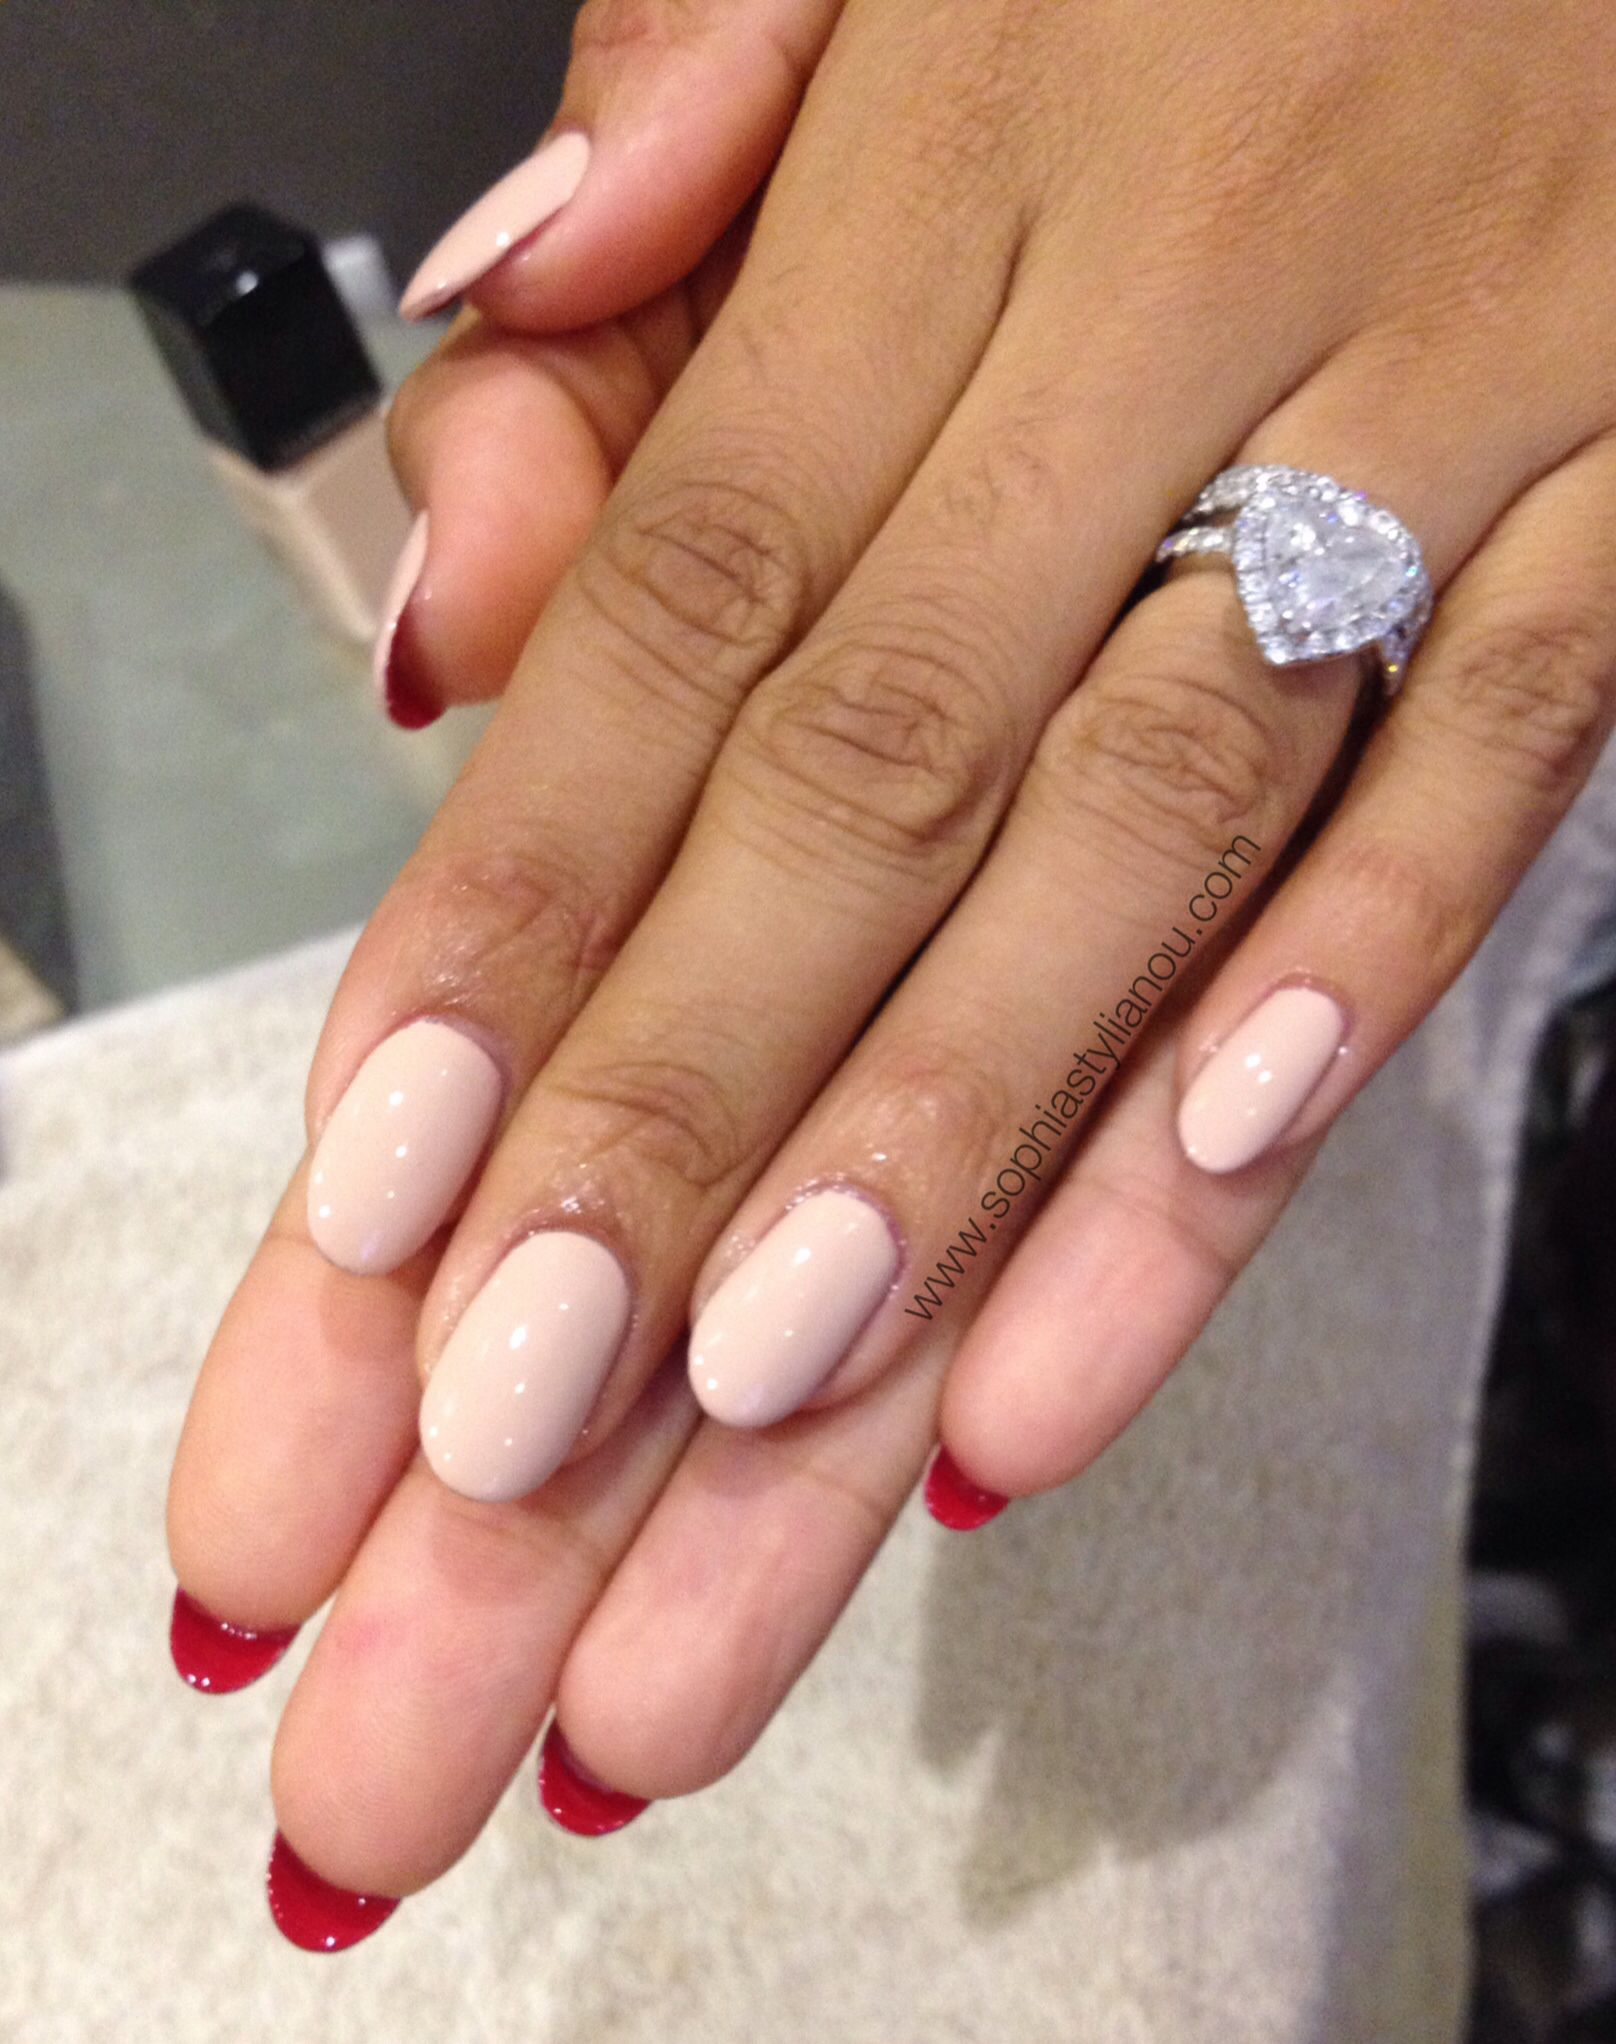 Louboutin Style Nails I Created On Rochelle Humes From The Saturdays